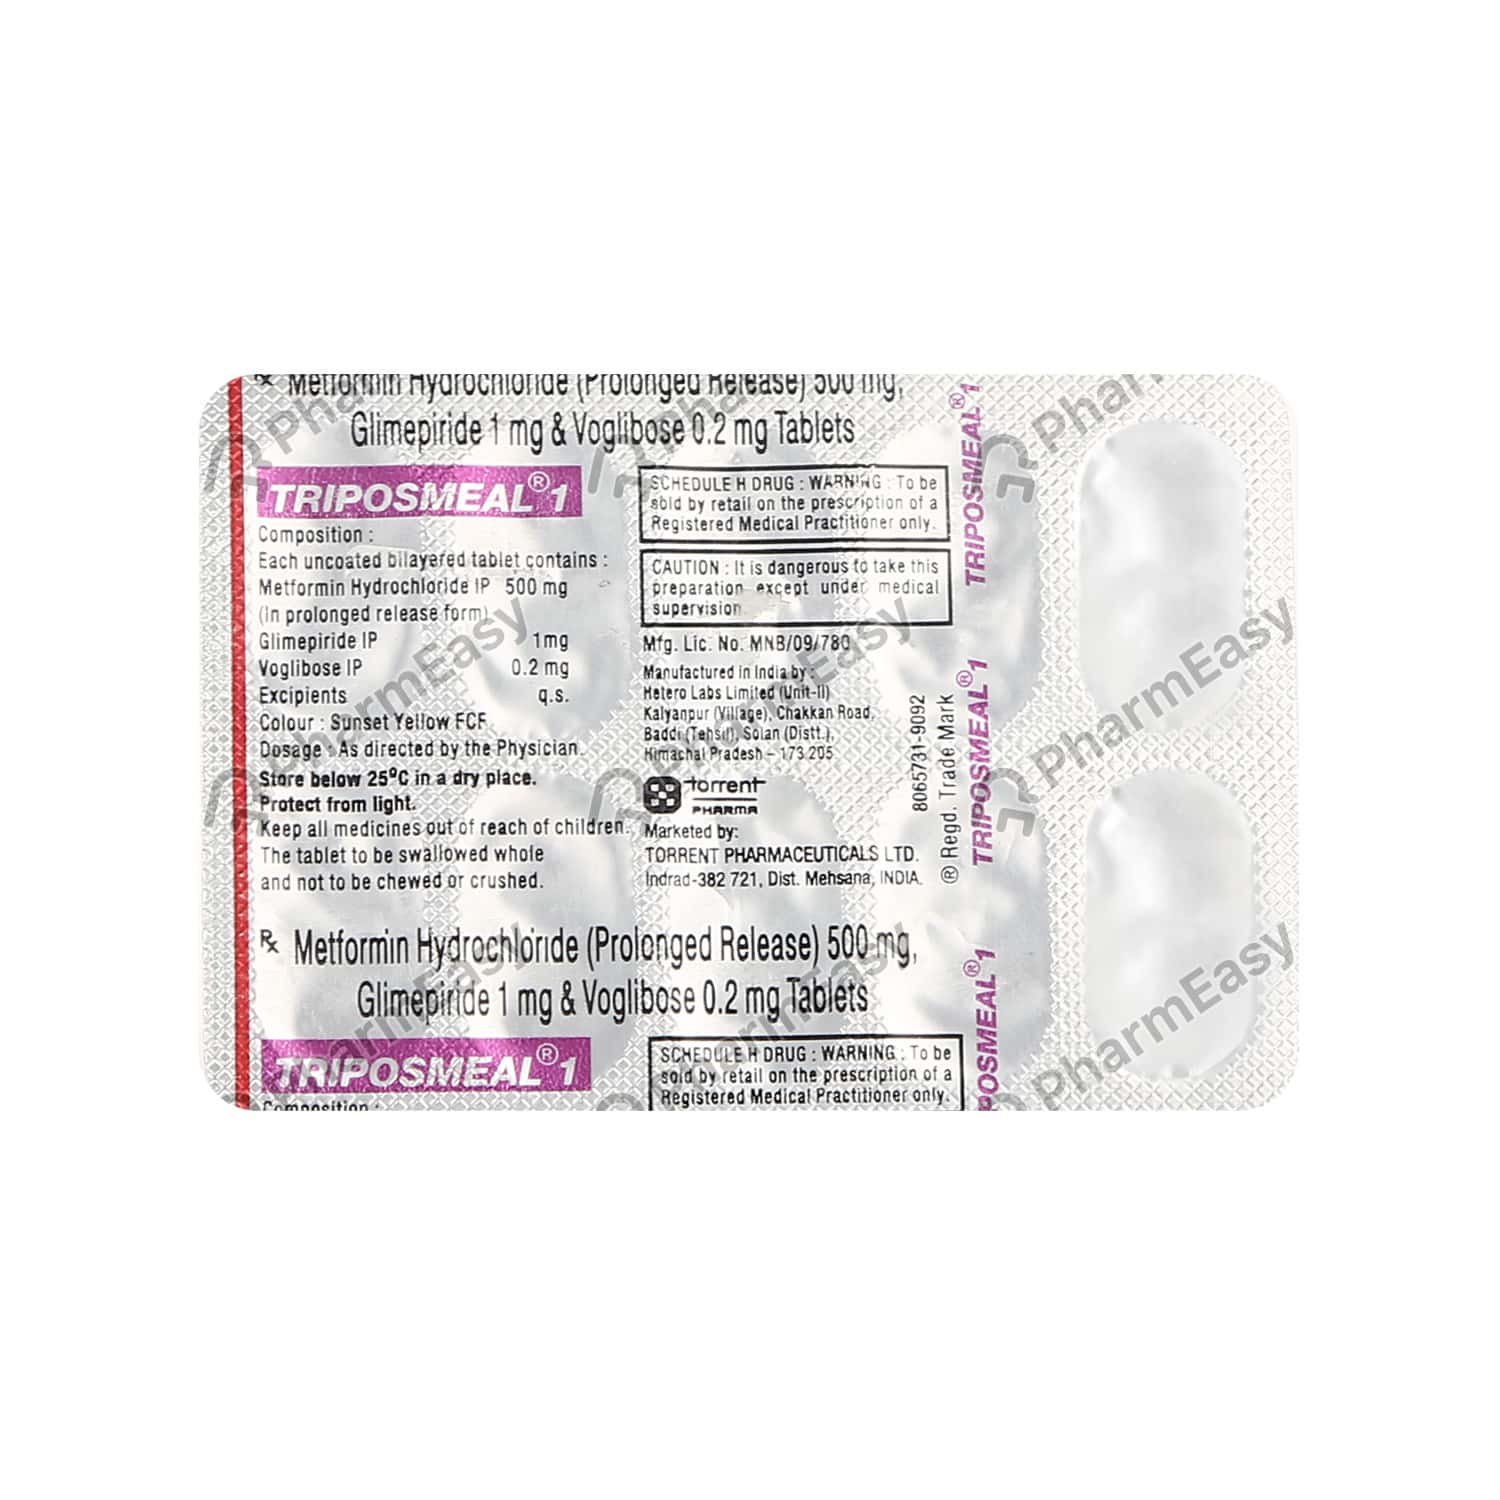 Triposmeal 1mg Strip Of 10 Tablets